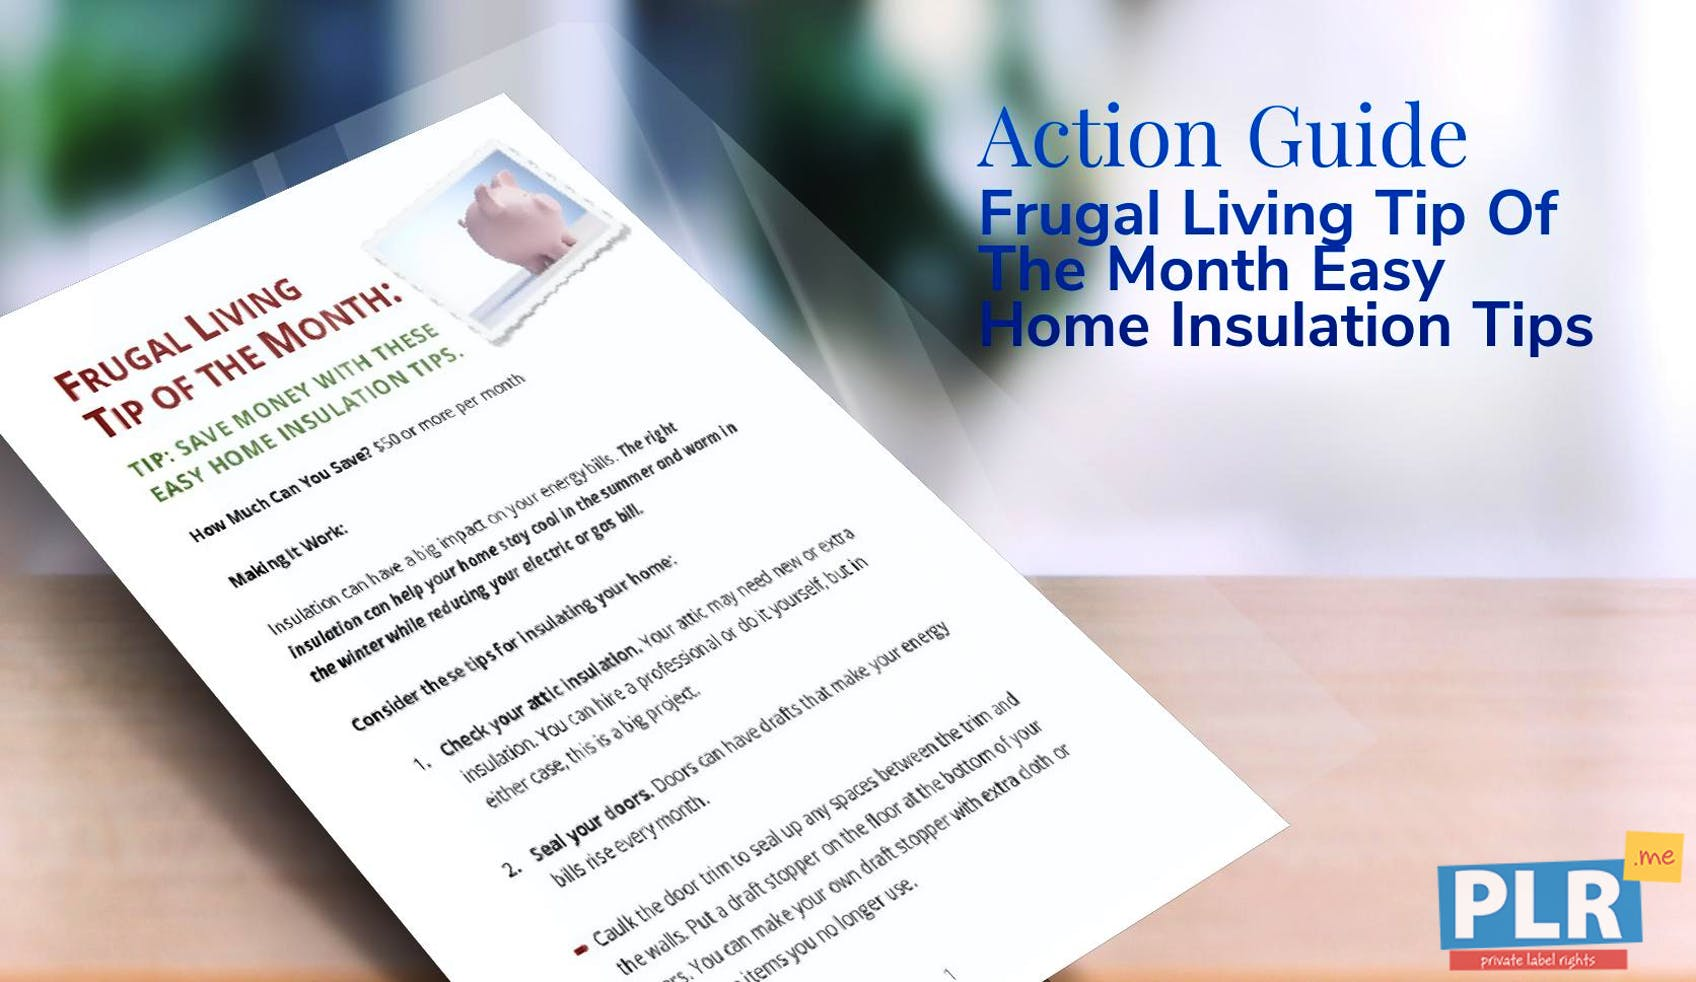 Plr action guides coaching handouts lead magnets frugal living frugal living tip of the month easy home insulation tips solutioingenieria Choice Image